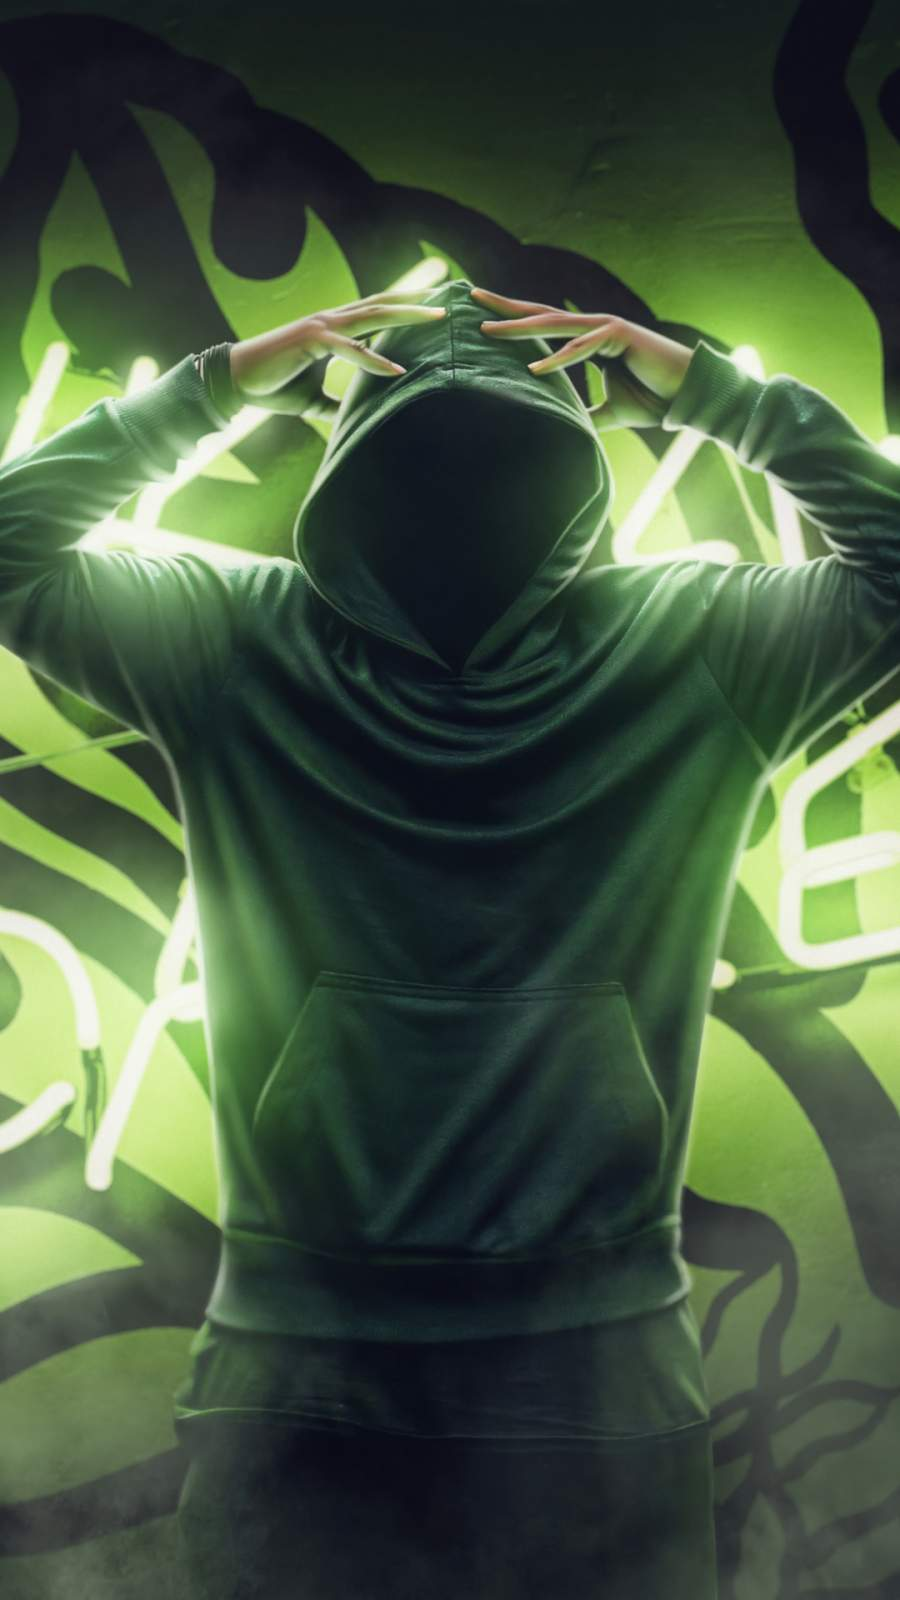 Anonymus Guy Green Powers iPhone Wallpaper